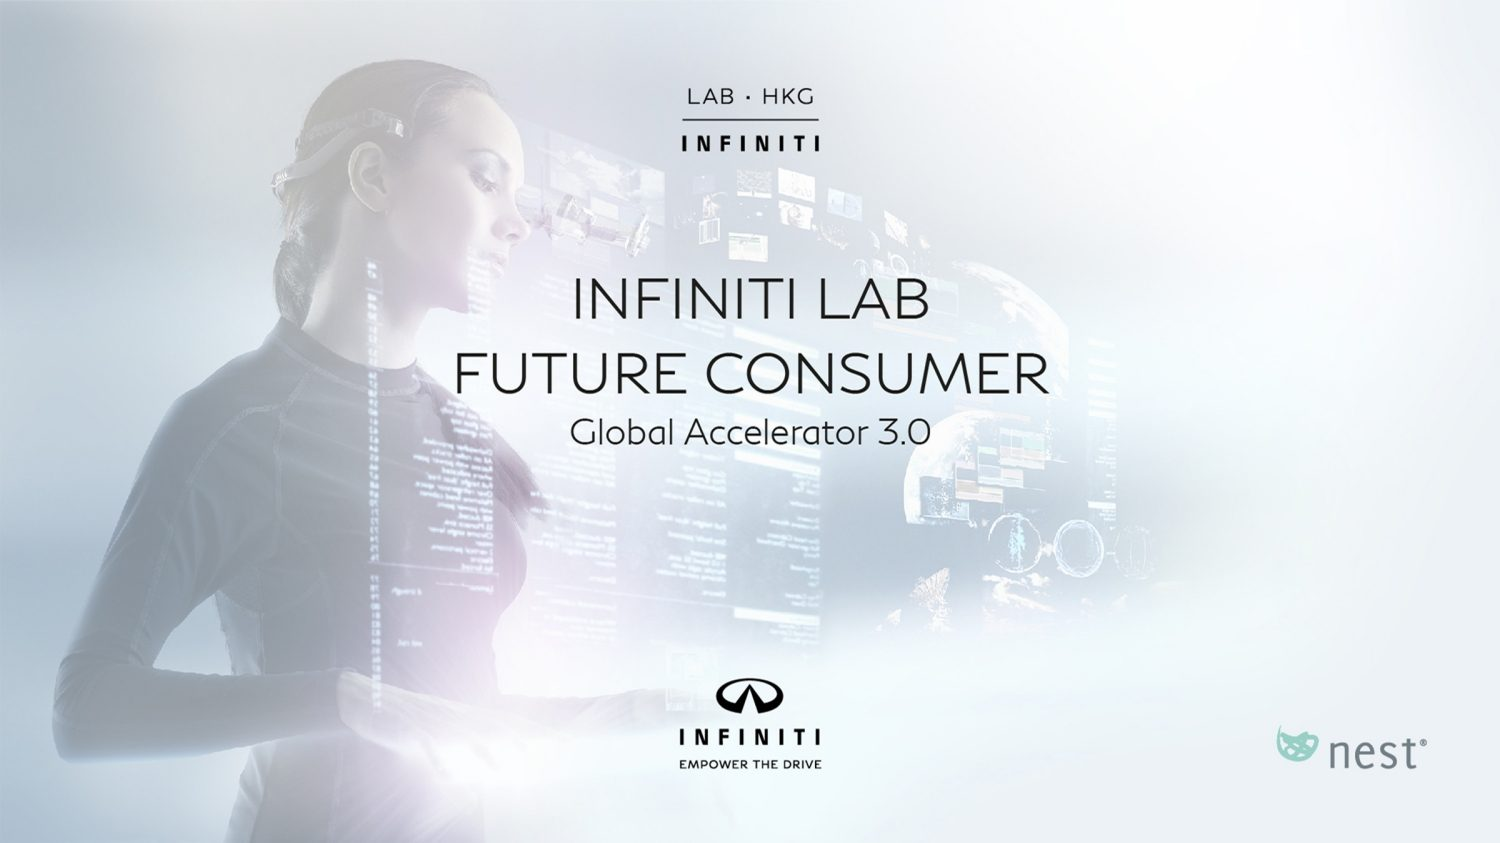 INFINITI LAB Accelerator Program | Global Accelerator 3.0